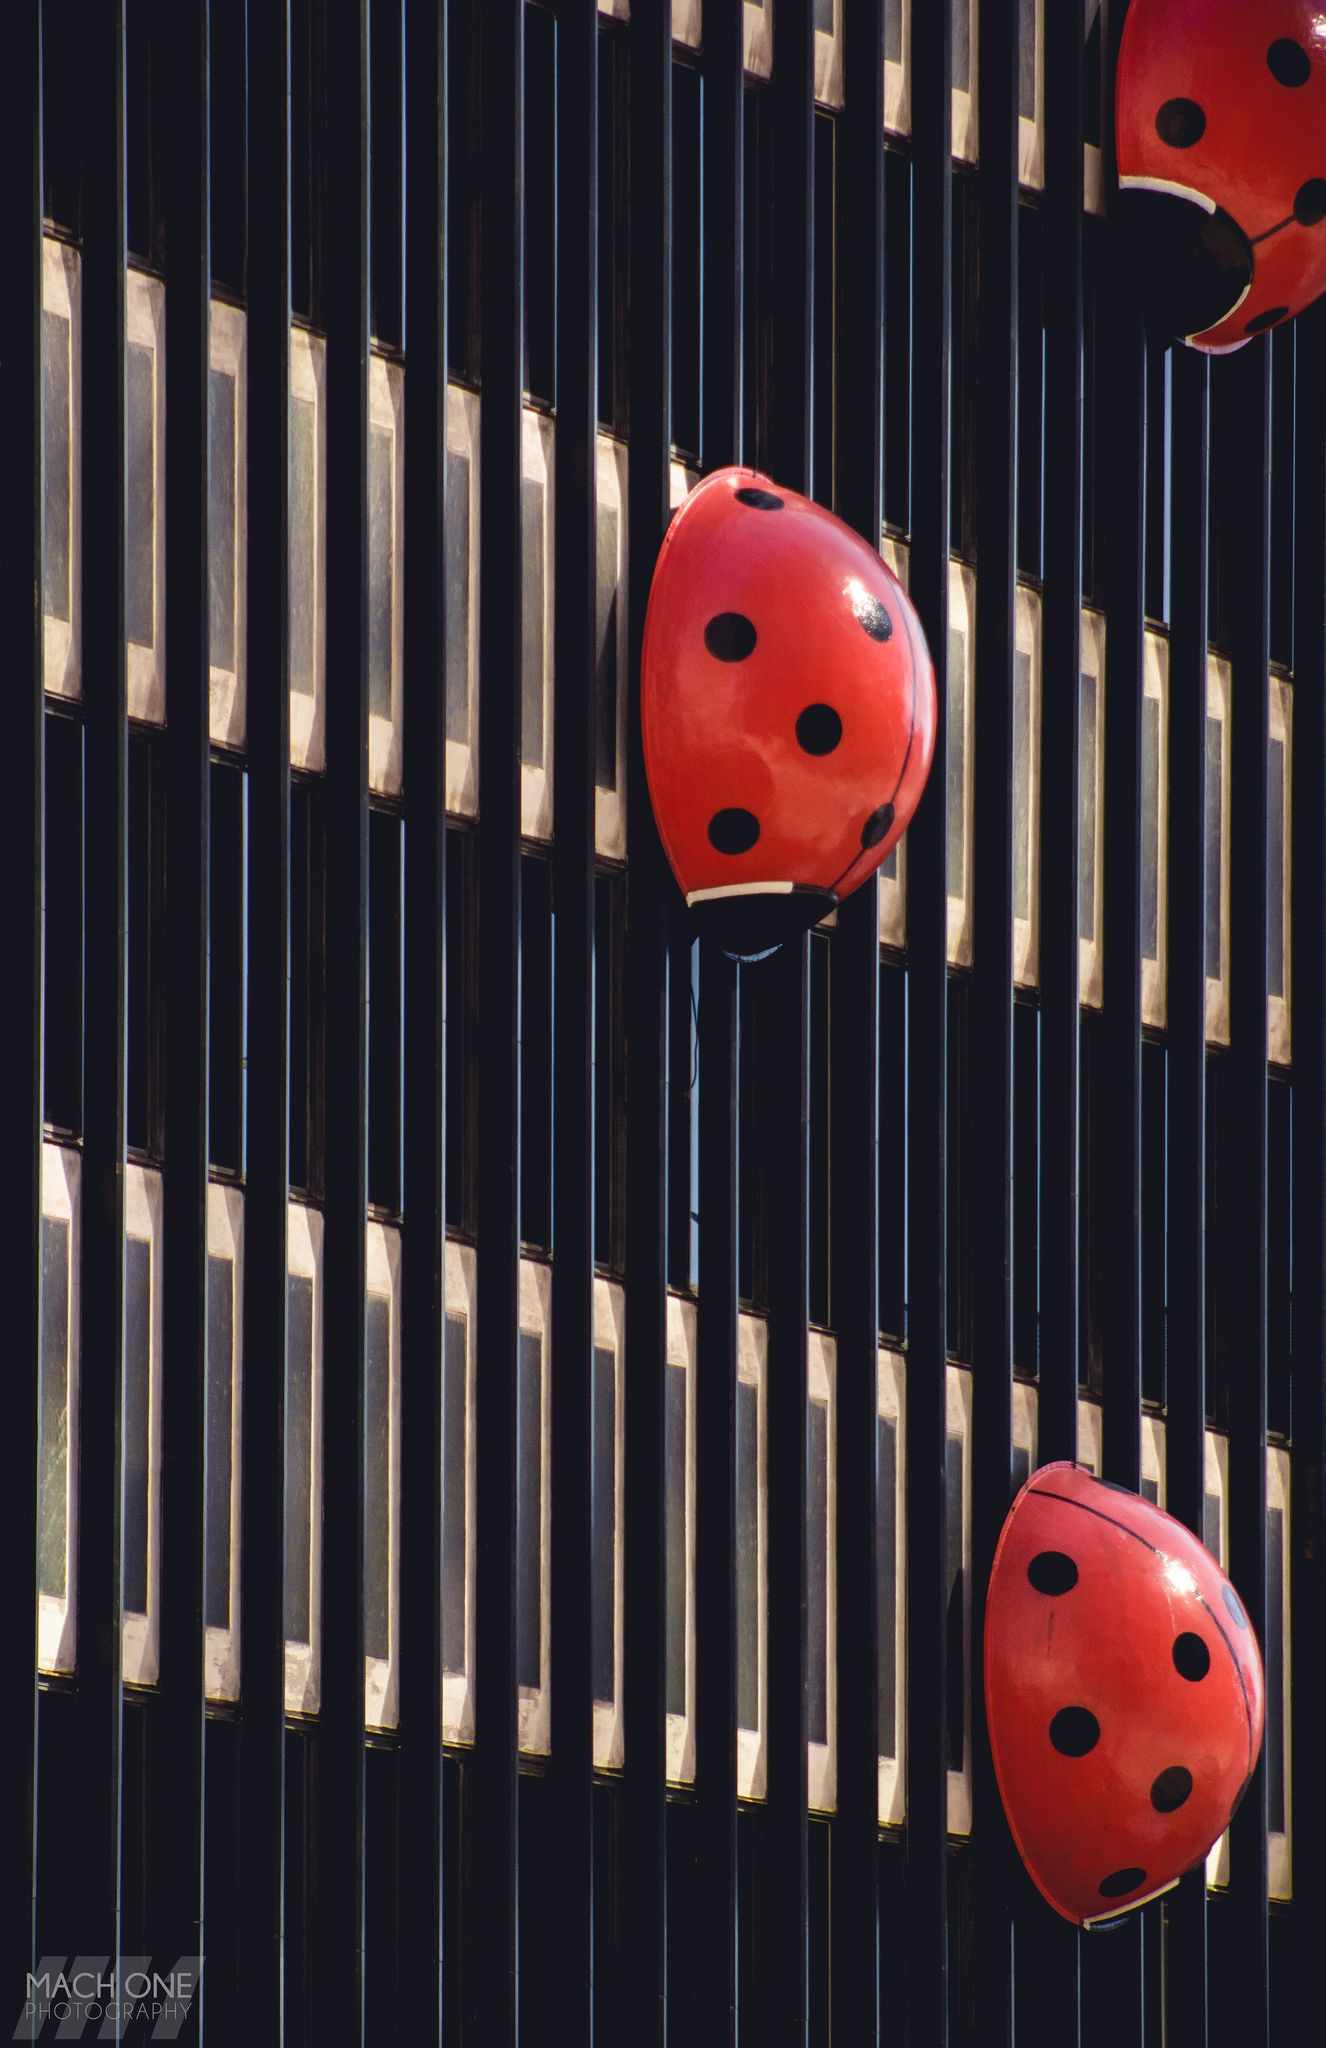 https://flic.kr/p/TJgdi9 | Lady Bugs | Lady bug scupltures resting calmly on the side of a building in downtown Milwaukee  FOLLOW ME ON YOUR FAVORITE SOCIAL MEDIA SITE.  Facebook, Google+, Instagram, Flickr, Tumblr, Pinterest.  Links on my website: machonephotography.myportfolio.com